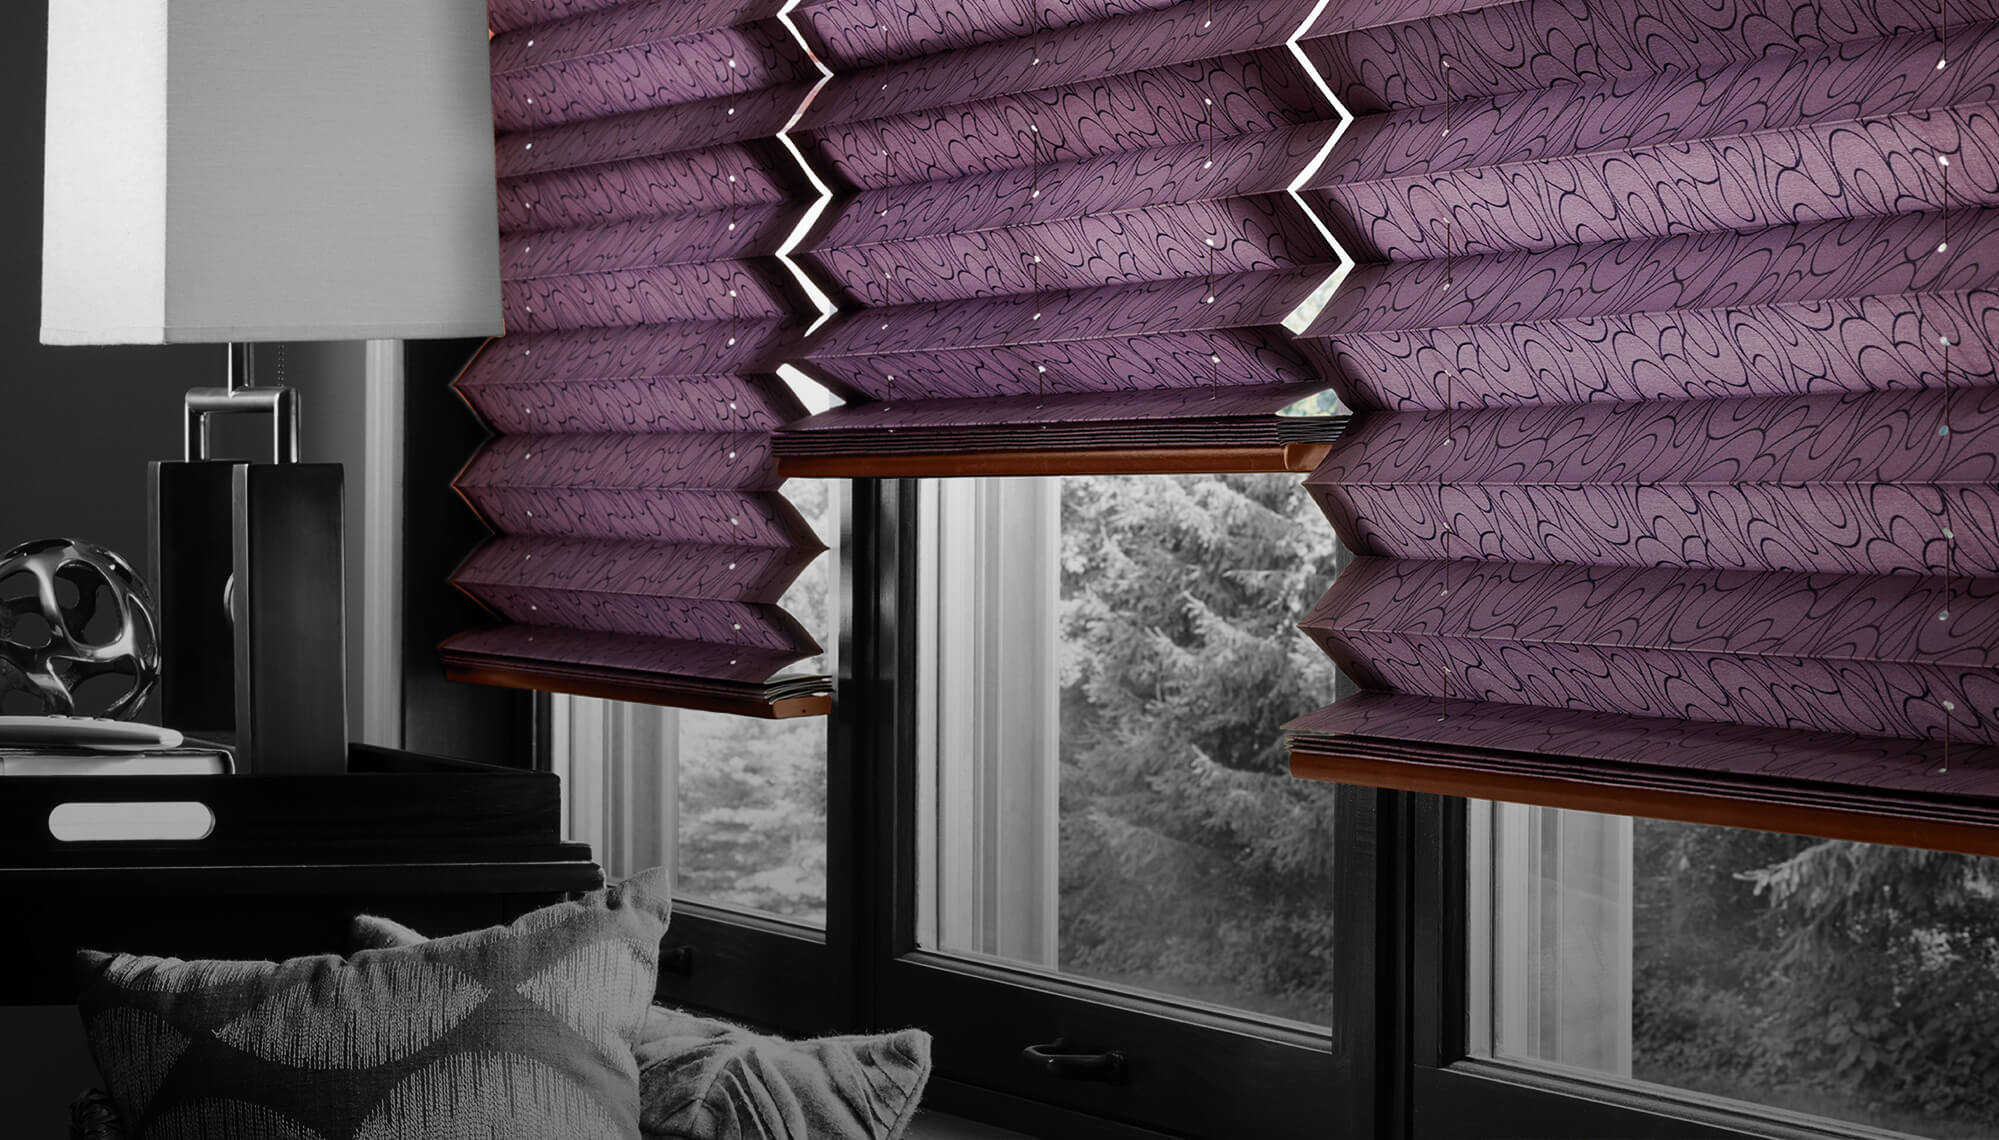 a gloomy scene of a purple pleated shades in a glass type window